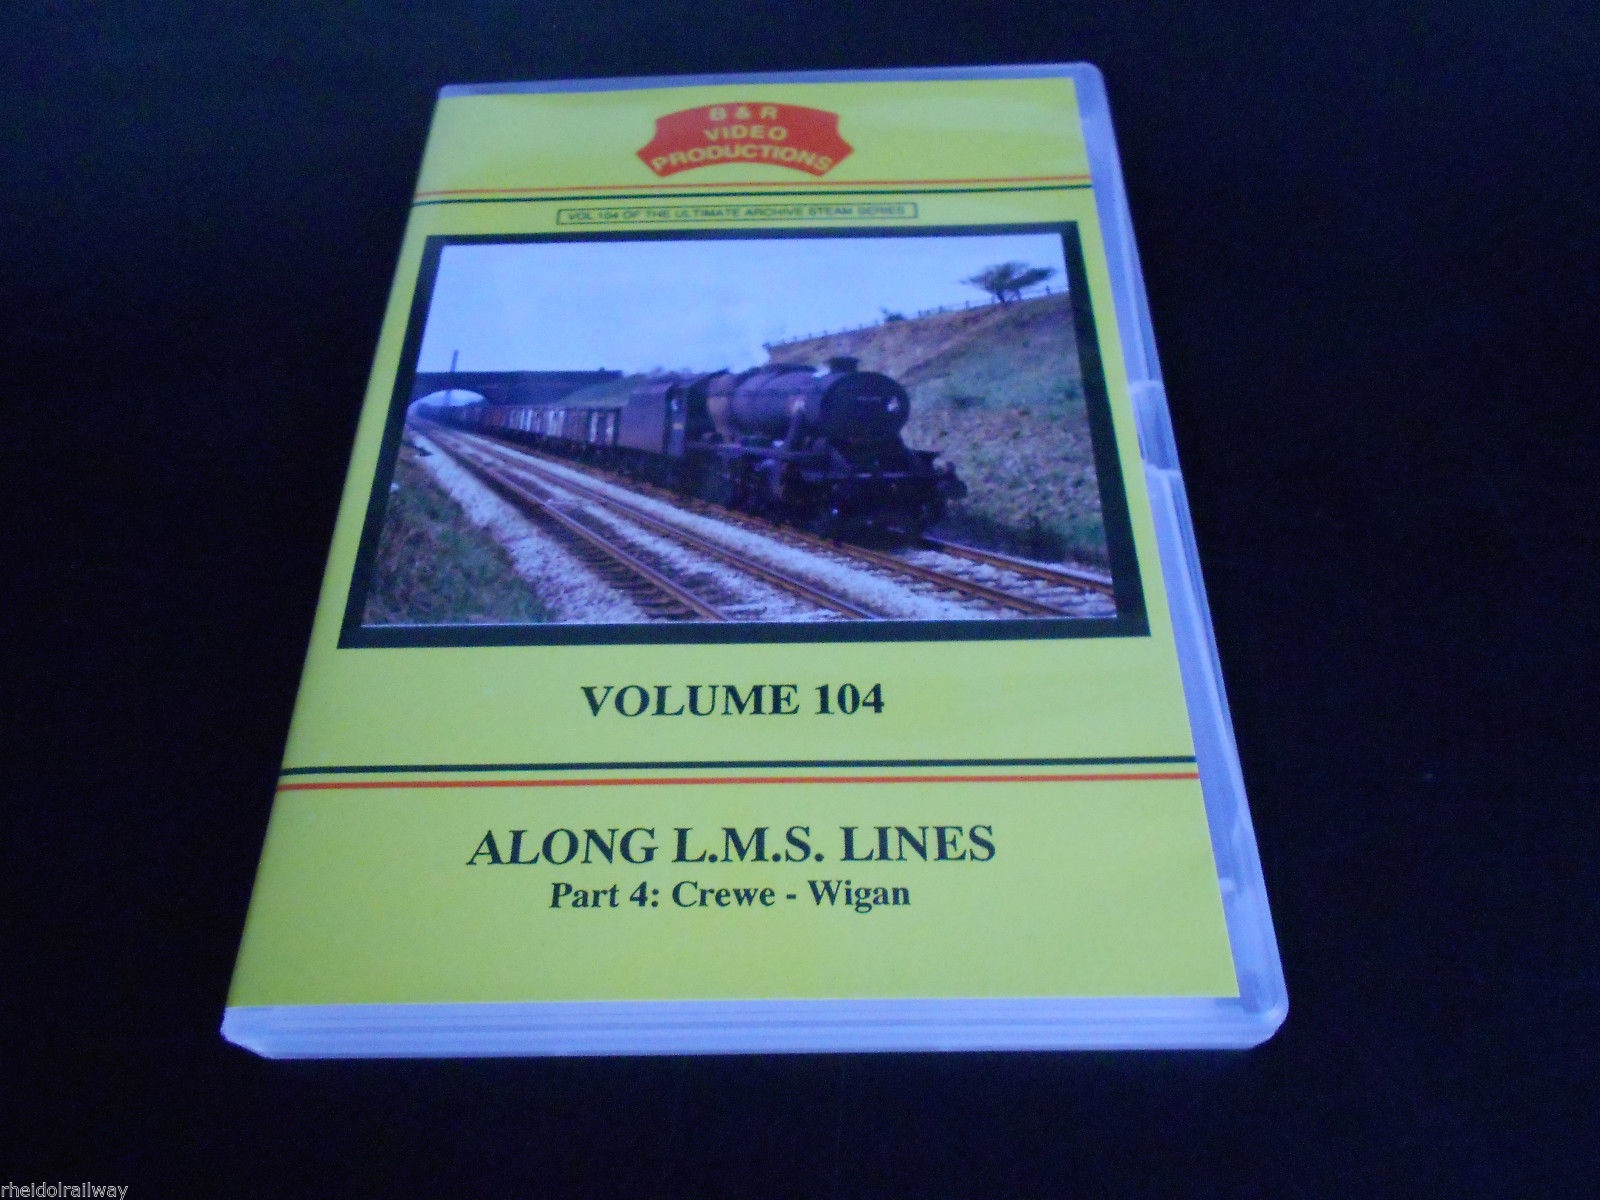 Crewe-Wigan Along L.M.S. Lines Volume 104 Part 4 B&R DVD Warrington Northwich - The Vale of Rheidol Railway